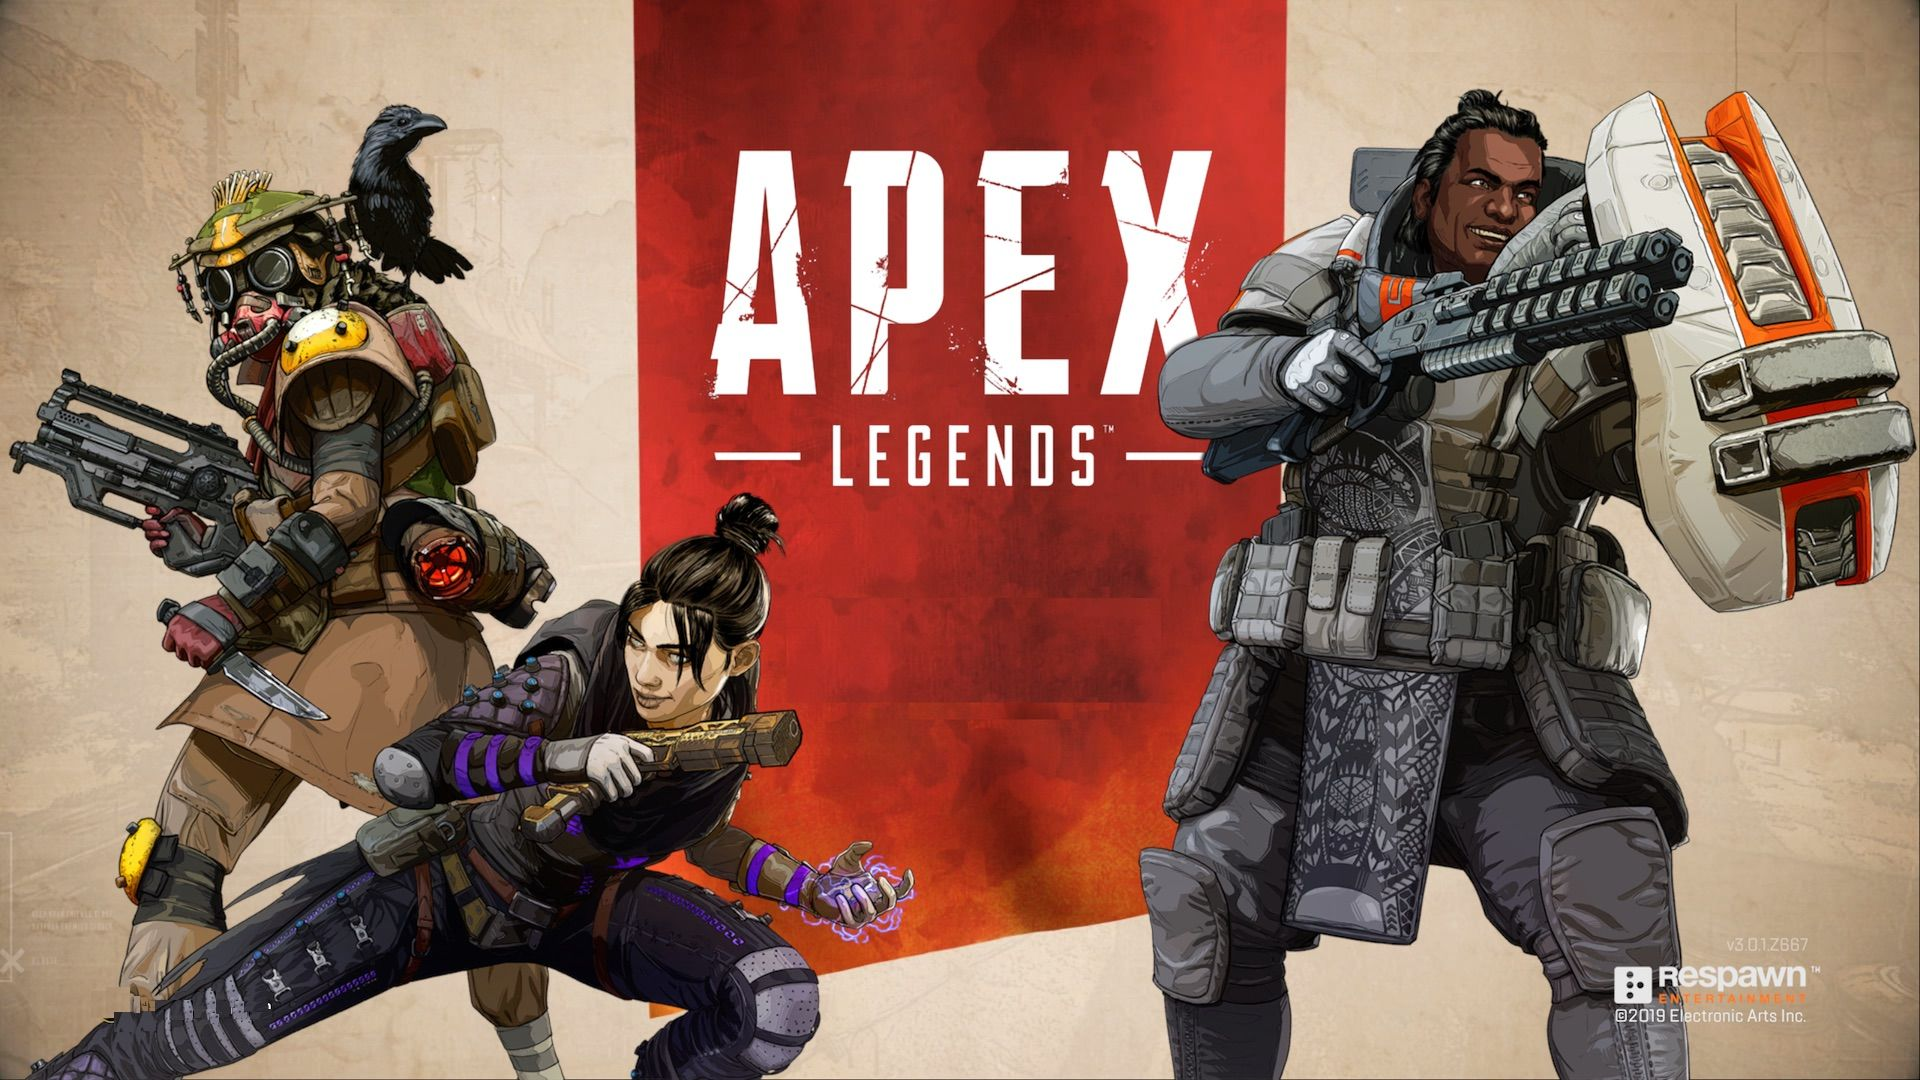 Apex Legend Wallpapers Hd And 5 Cool Tips To Play It So You Can Be